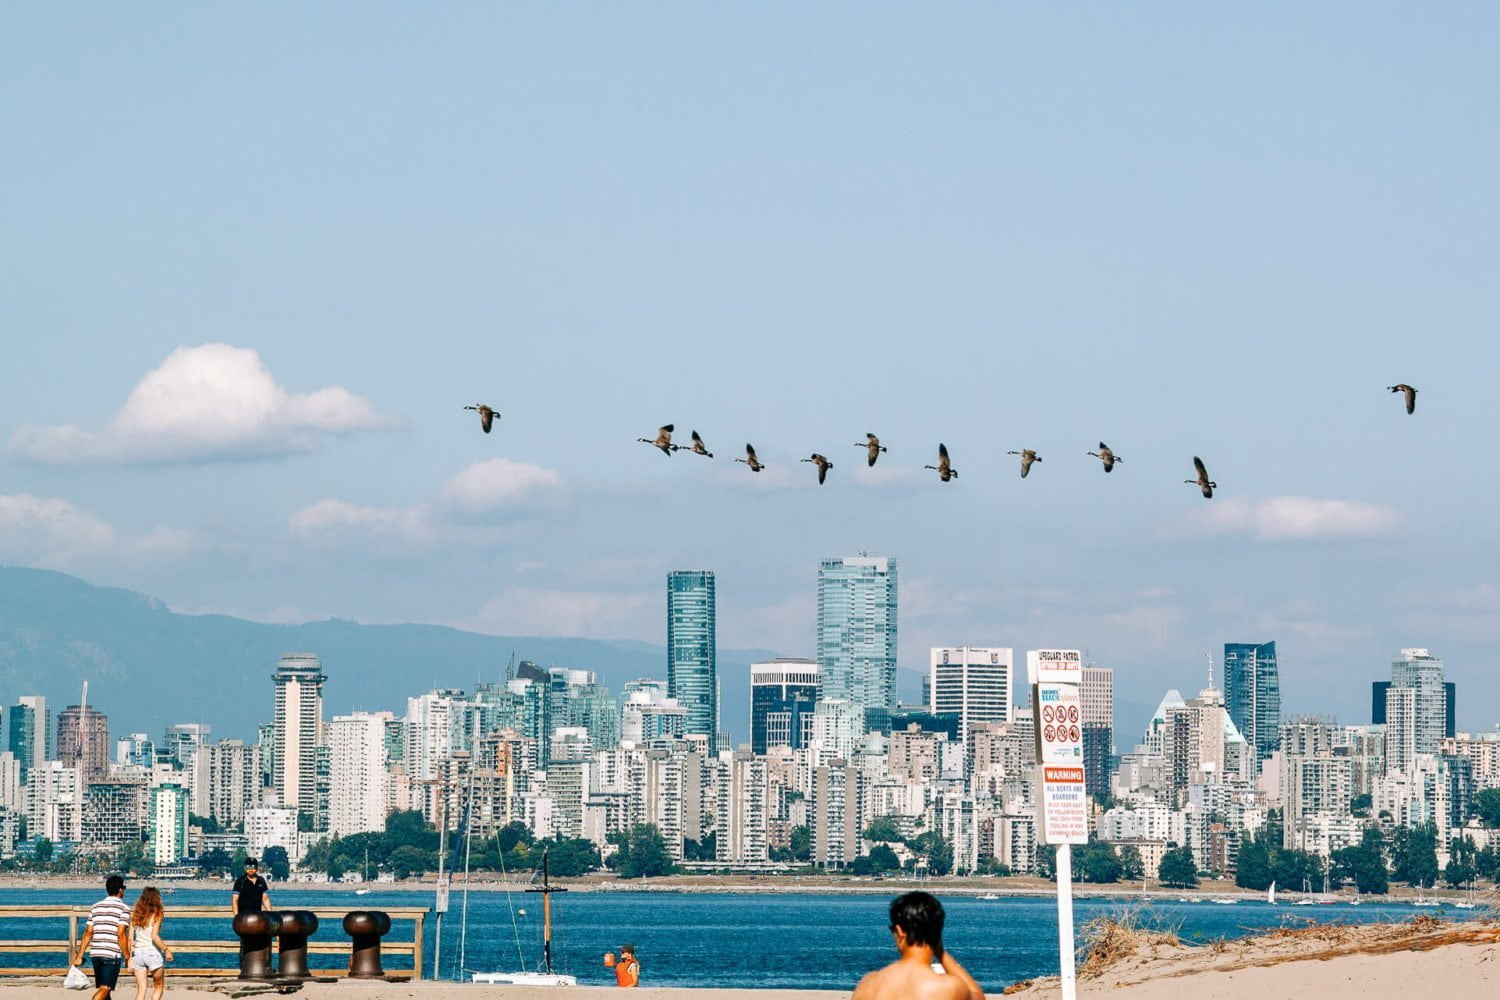 Vancouver skyline views from Jericho Beach